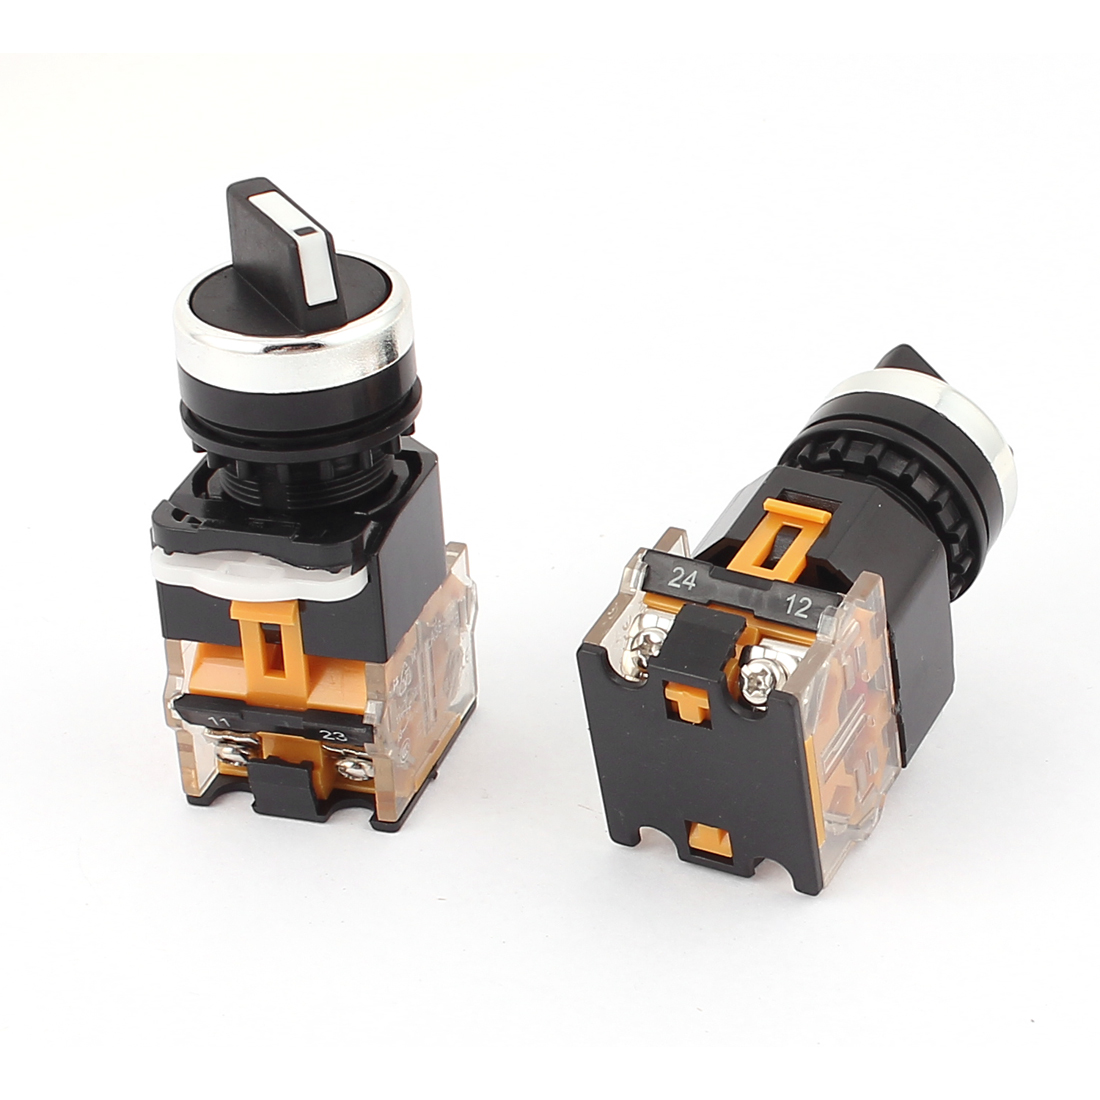 2pcs 660V 10A 2 Position 22mm Panel Mounting DPST Latching Rotary Selector Switch